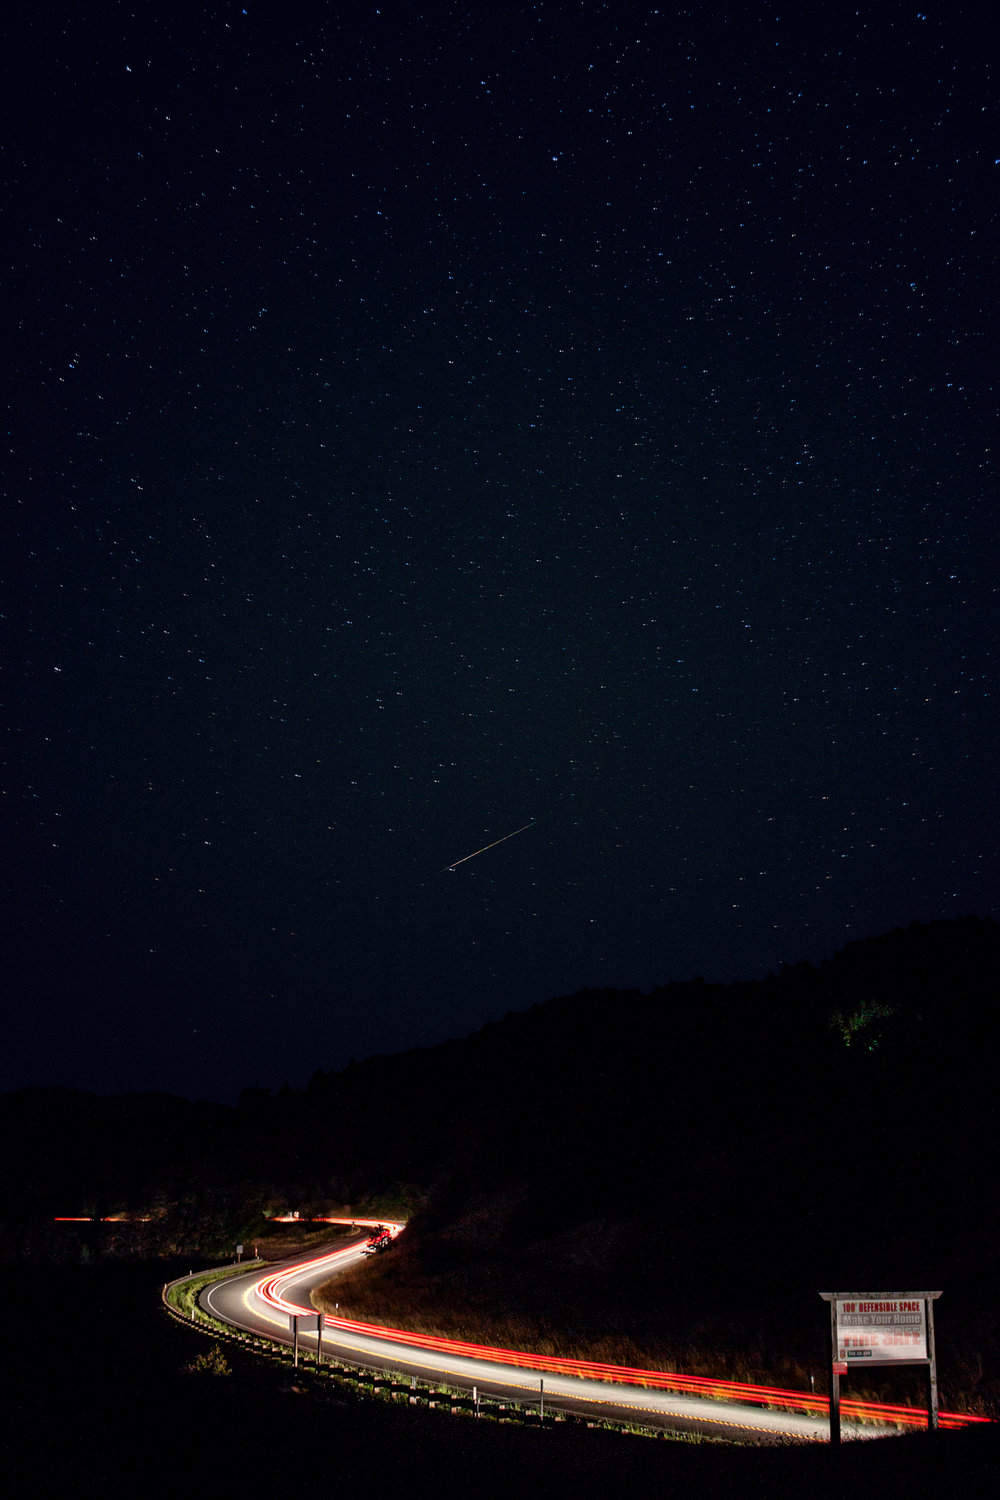 berry_summit_perseid_meteor_5820-2.jpg